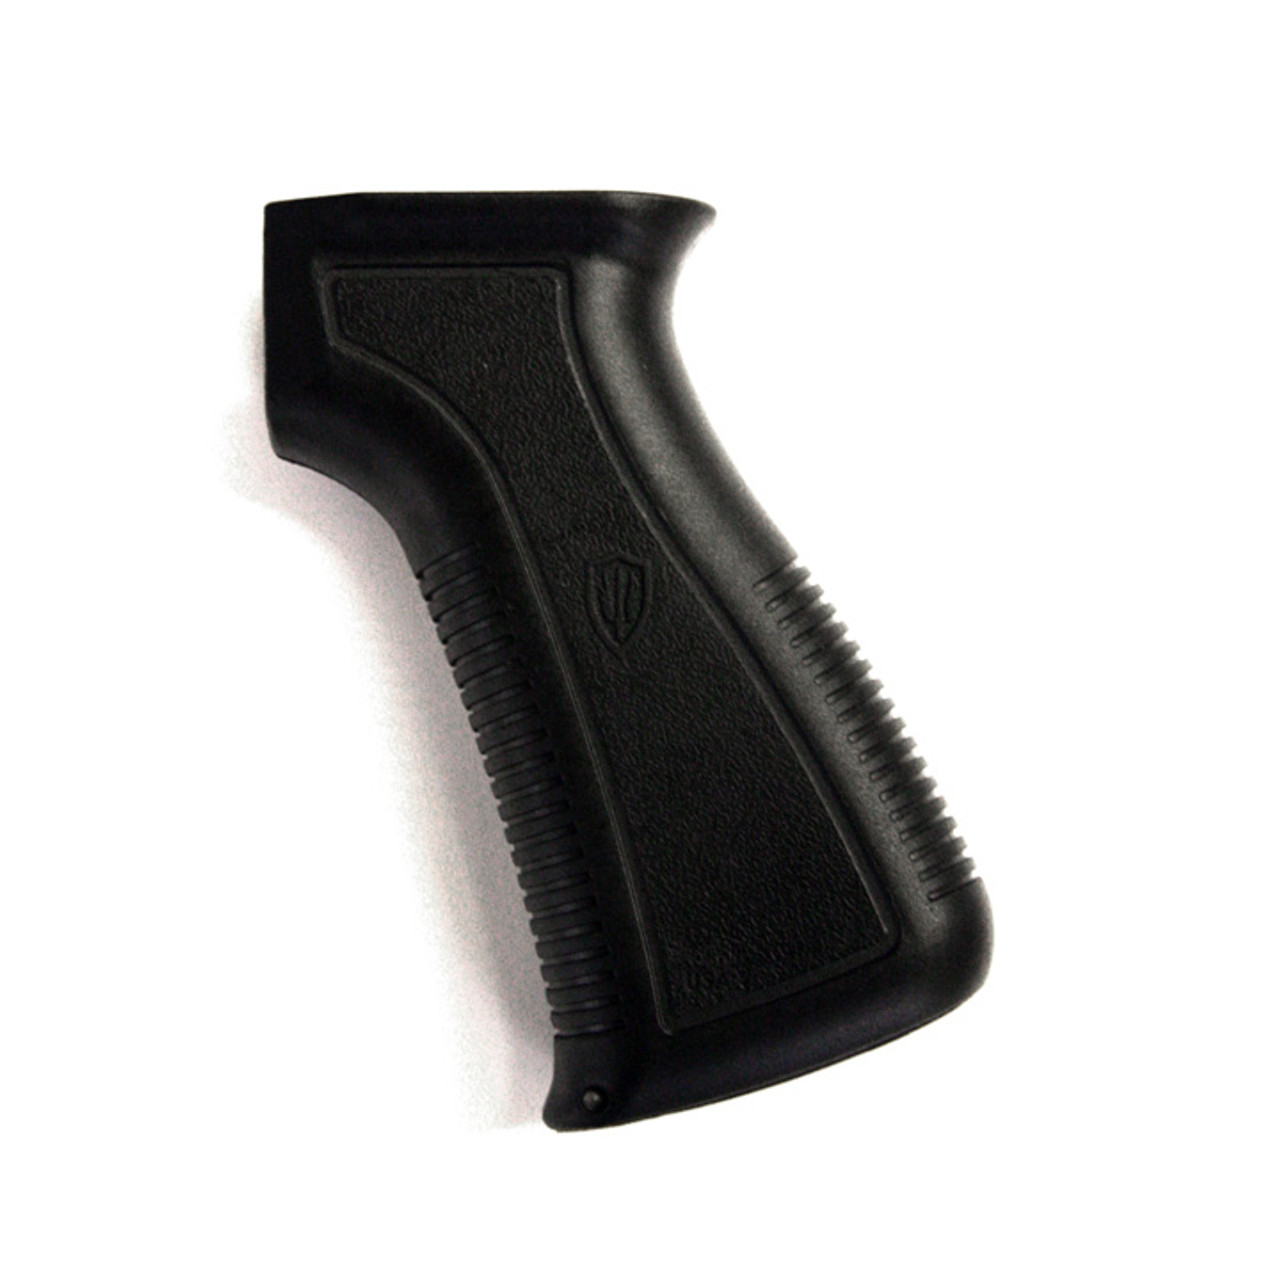 Archangel® OPFOR® AK-Series Pistol Grip - Black Polymer